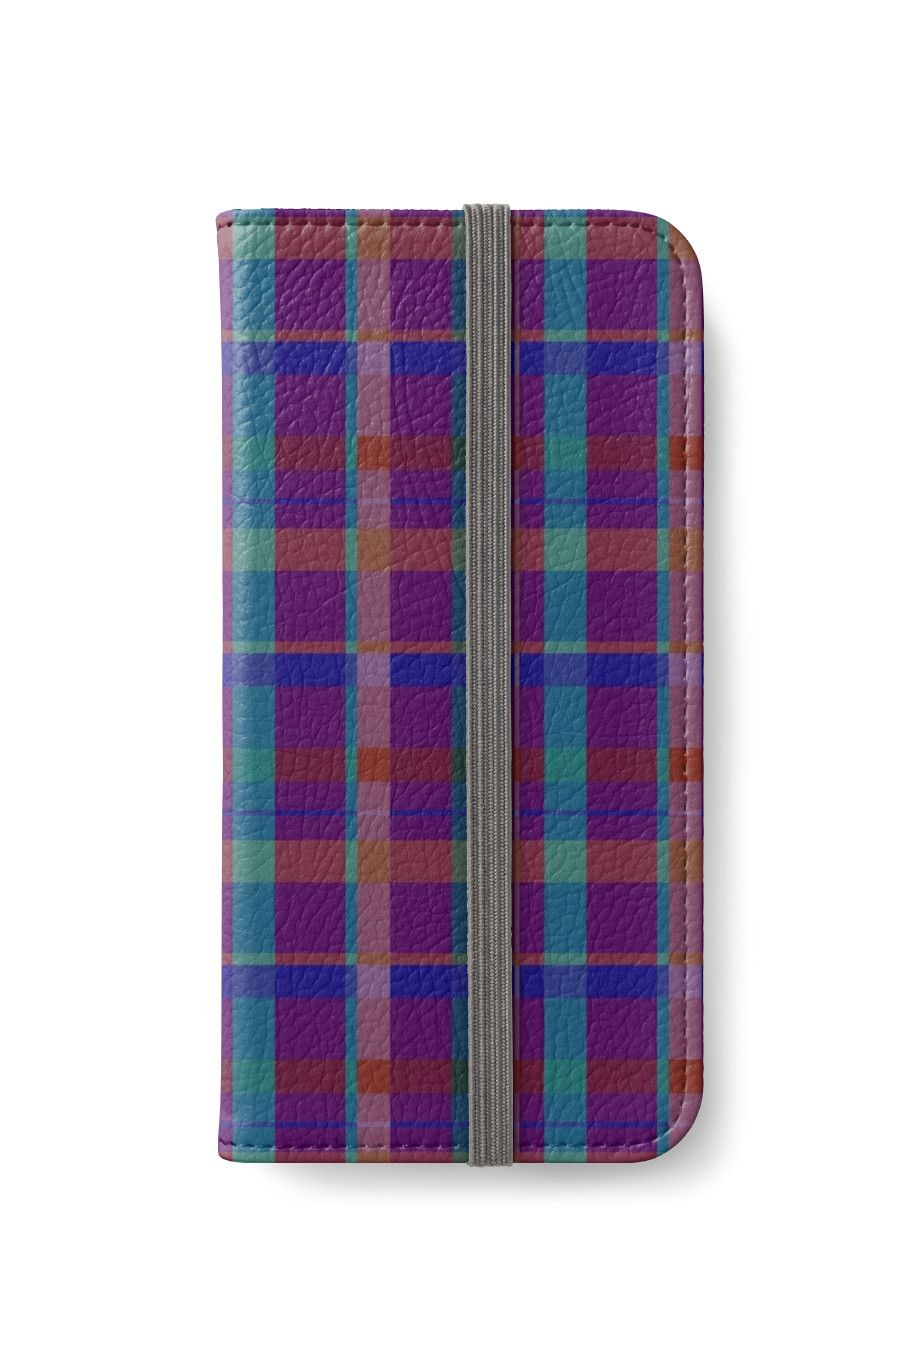 Purple Plaid Plaid Pattern iPhone Wallet by scardesign11 #iPhone #iphonewallet #buyphonewallet #buygifts #gifts #pattern #circles #abstract #geometric #summergifts #redbubble #giftsforhim #giftsforher #giftsforteens #teenagers #hipster #colorful #style #swag #plaid #plaidgifts